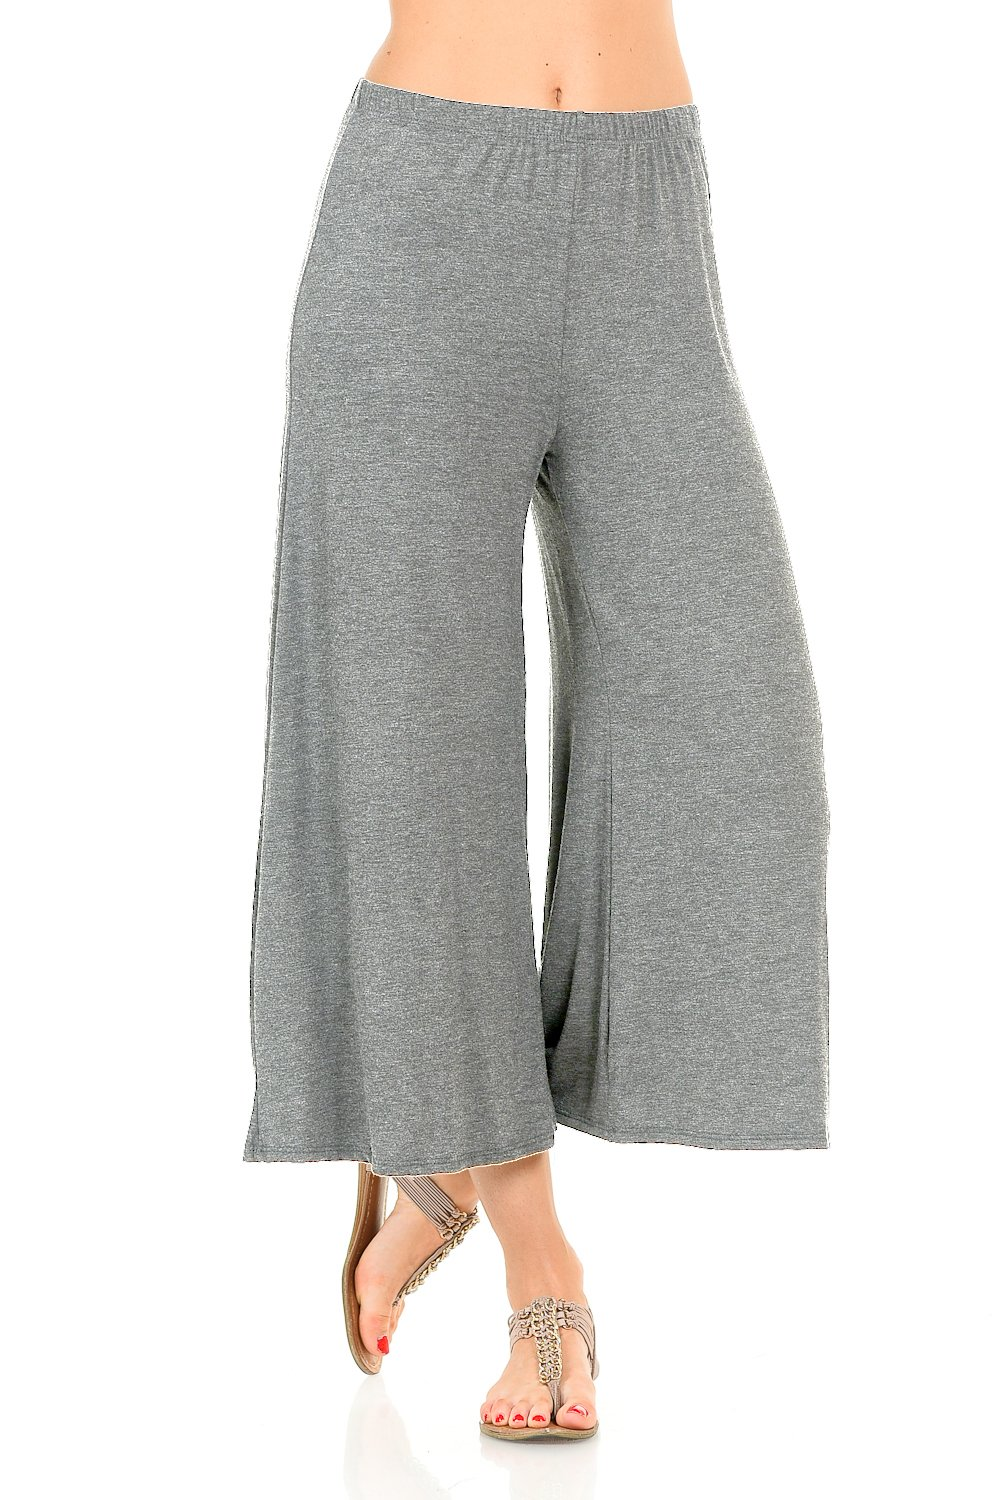 iconic luxe Womens Elastic Waist Jersey Culottes Pants